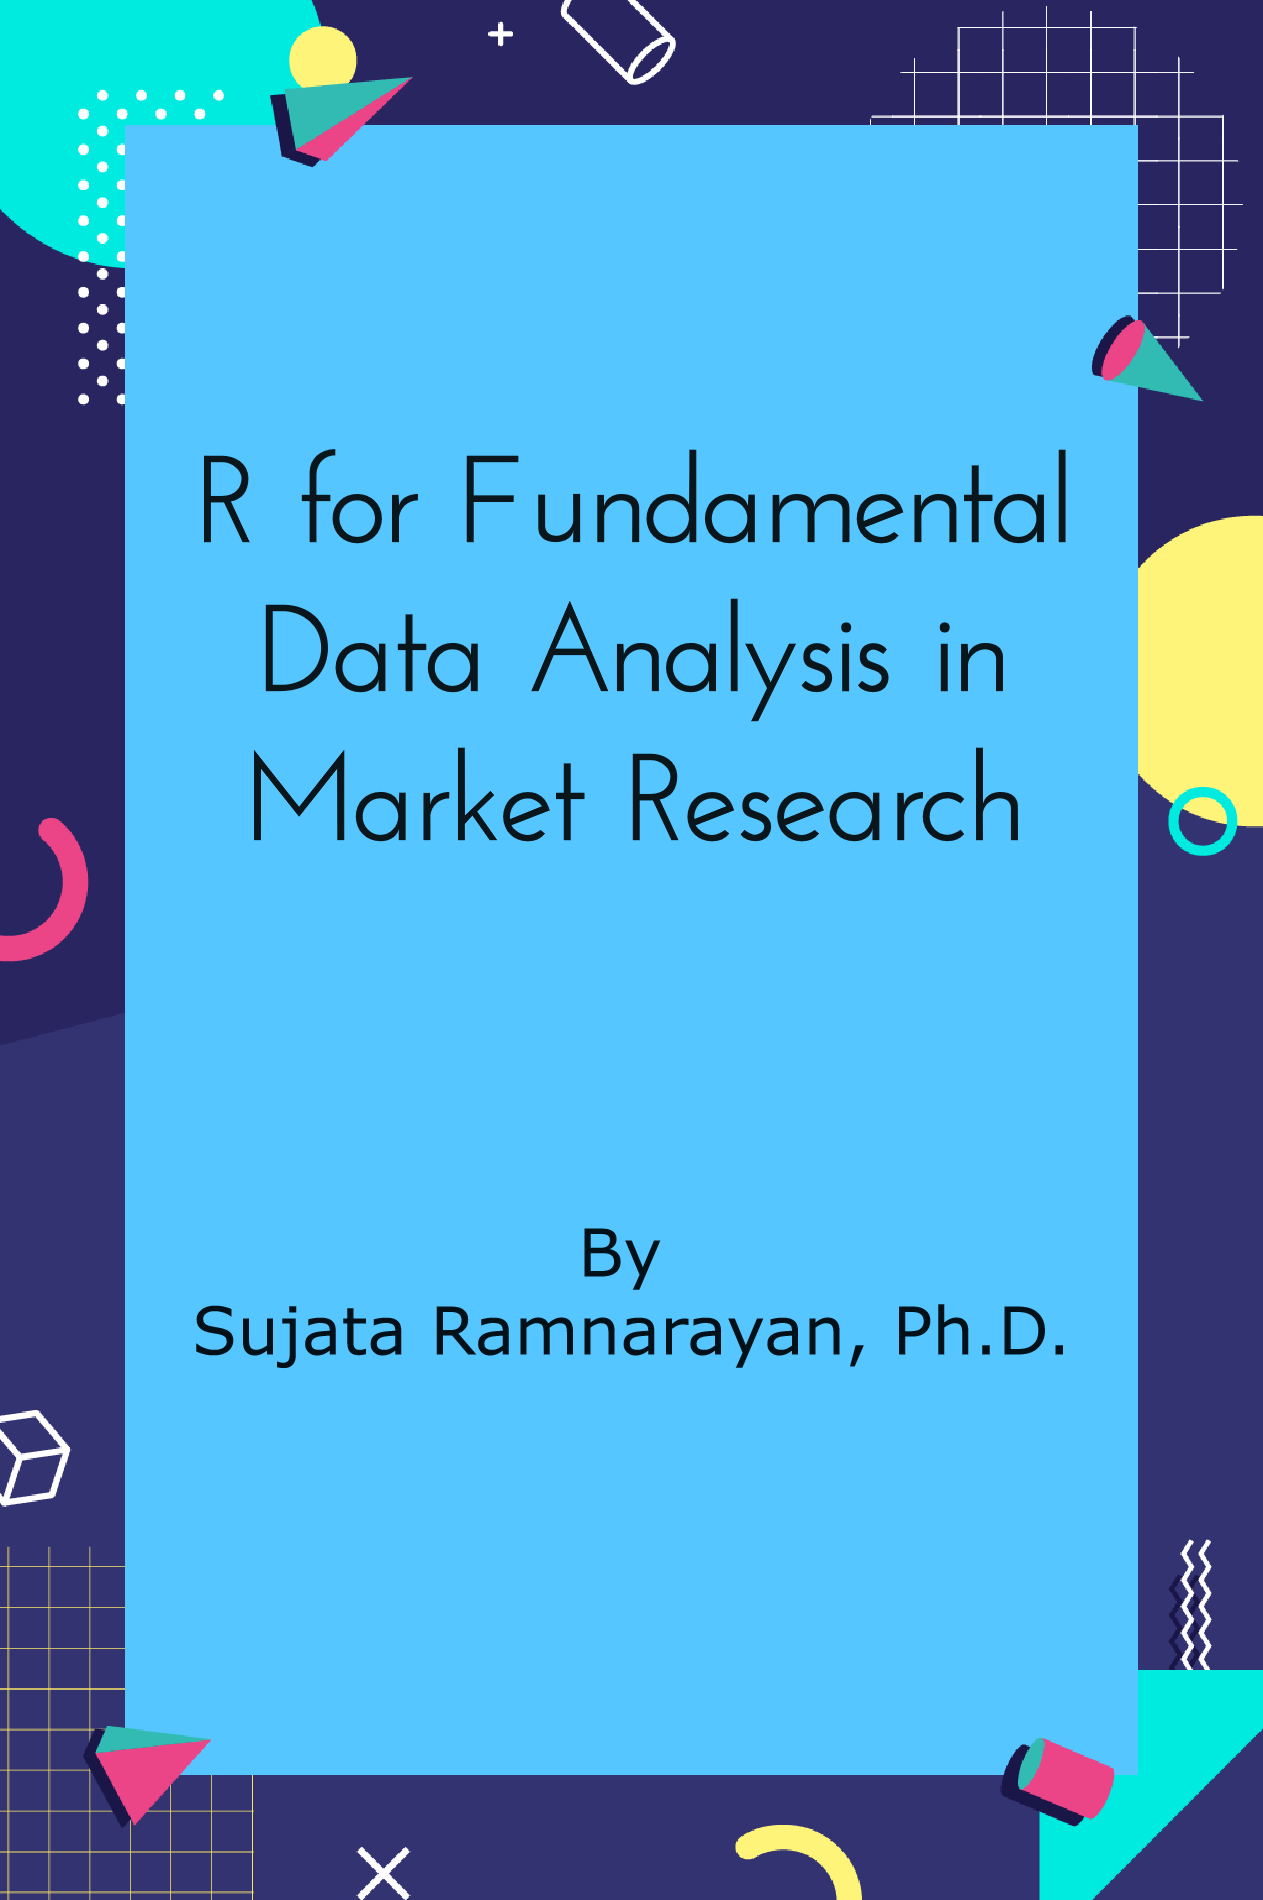 R for Fundamental Data Analysis in Market Research